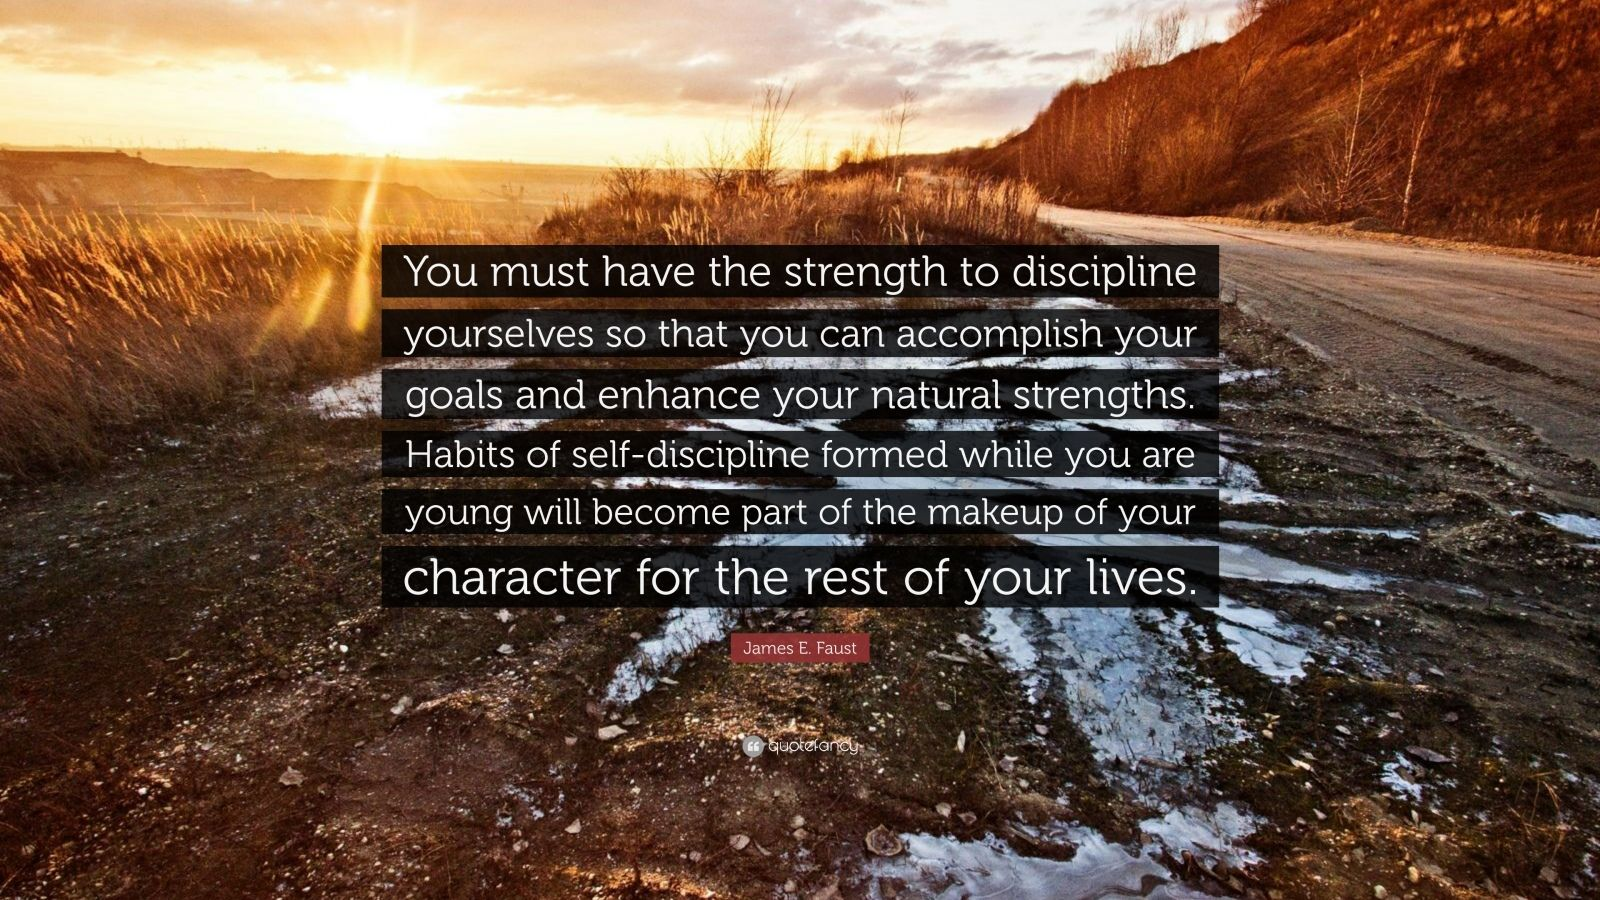 "James E. Faust Quote: ""You must have the strength to discipline yourselves so that you can accomplish your goals and enhance your natural strengths. Habits of self-discipline formed while you are young will become part of the makeup of your character for the rest of your lives."""